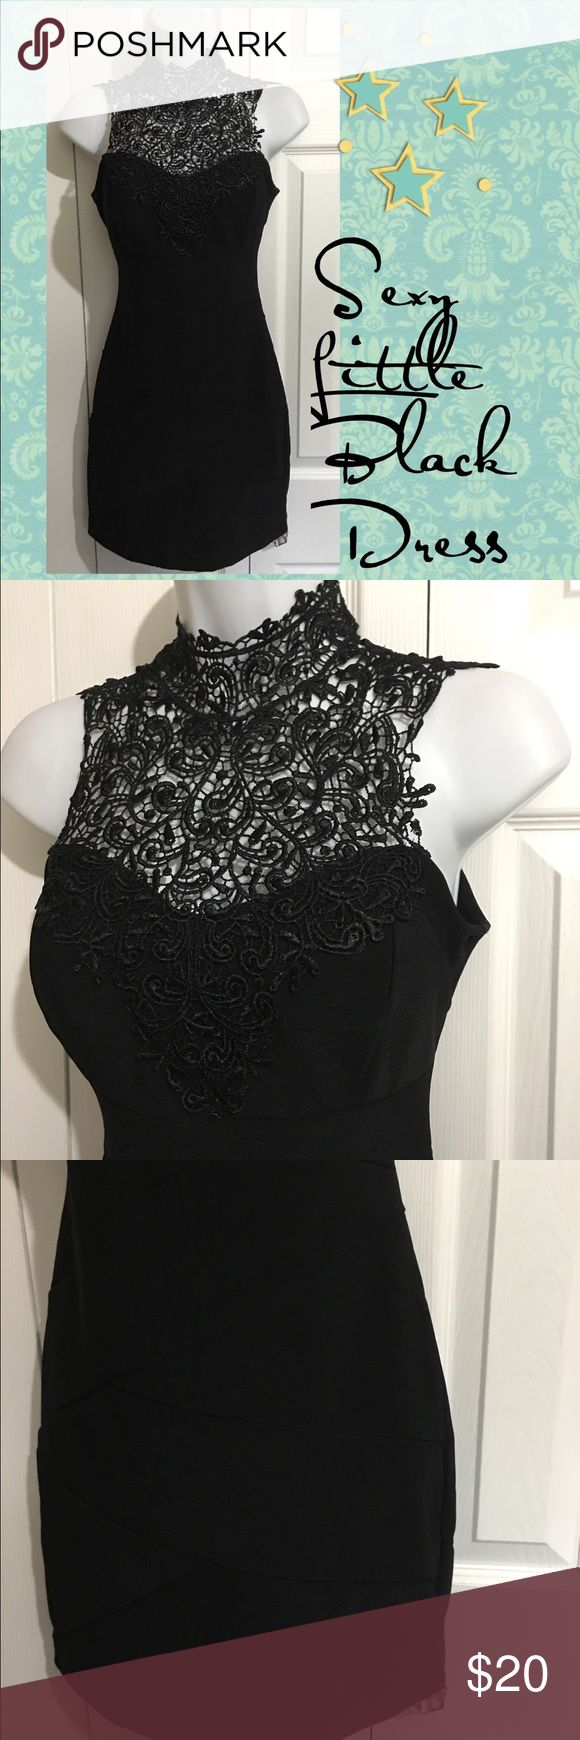 WINDSOR Sexy Little Black Dress SMALL WINDSOR  Sexy Little Black Dress  Size SMALL please see measurements as sizing and fit differs due to manufacturer, body shape and style.  Great for Career, cocktail or Event Wear This is a sexy dress that ties at the back neck and is open in back-see pictures. The bust is lightly padded.  Measurements taken laying flat 